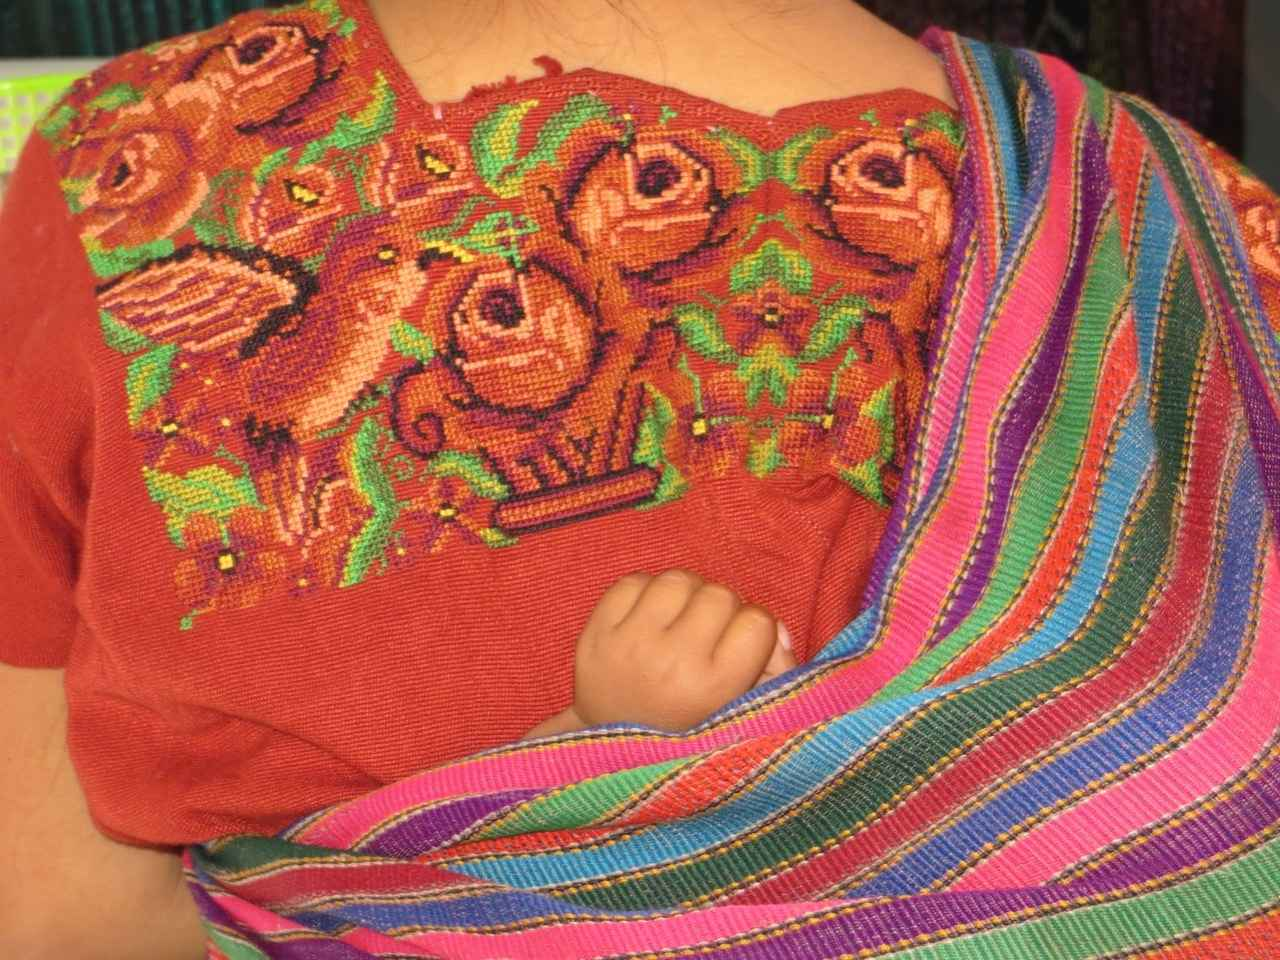 Your donation will provide healthcare for Guatemala's most vulnerable families. image